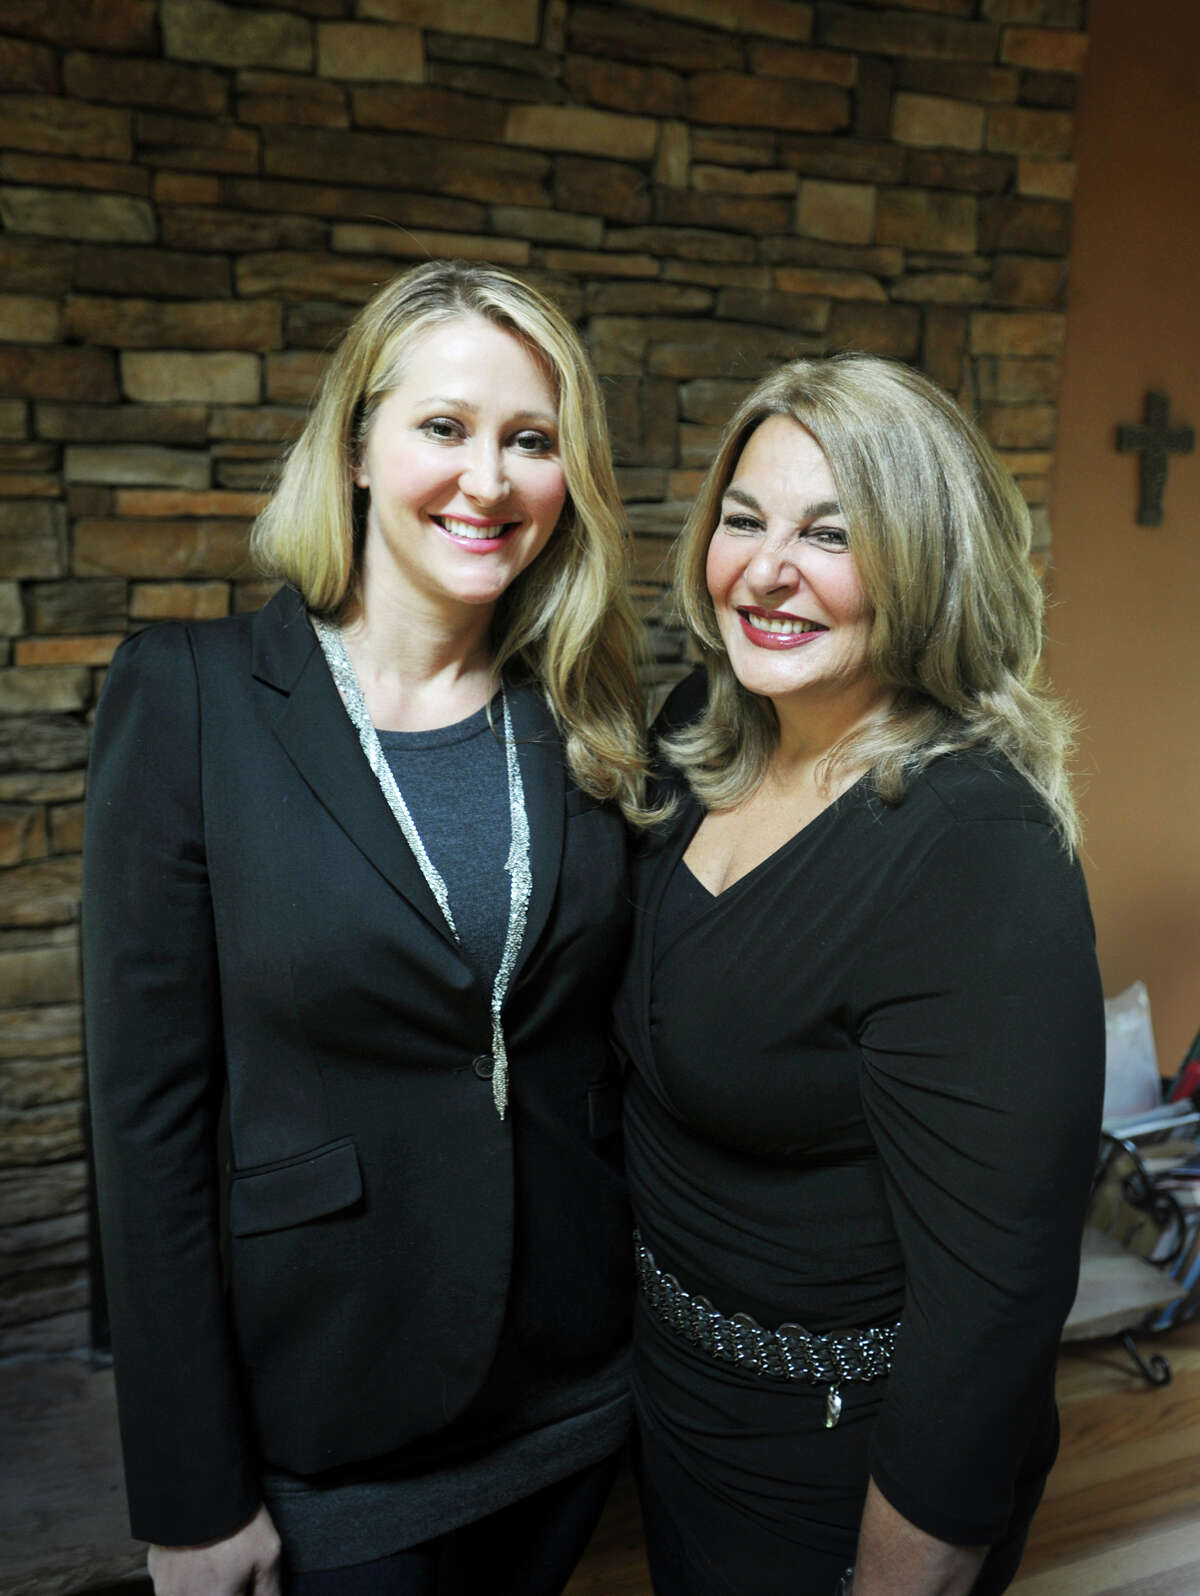 Partners in D & B Wellness, LLC, Karen Barski, left, and Angela D'Amico, both of Trumbull, are now certified to open a medical marijuana dispensary in medical offices at 4 Garella Road in Bethel. The pairs' previous application to open a facility on Main Street in Bridgeport was not approved by the city.